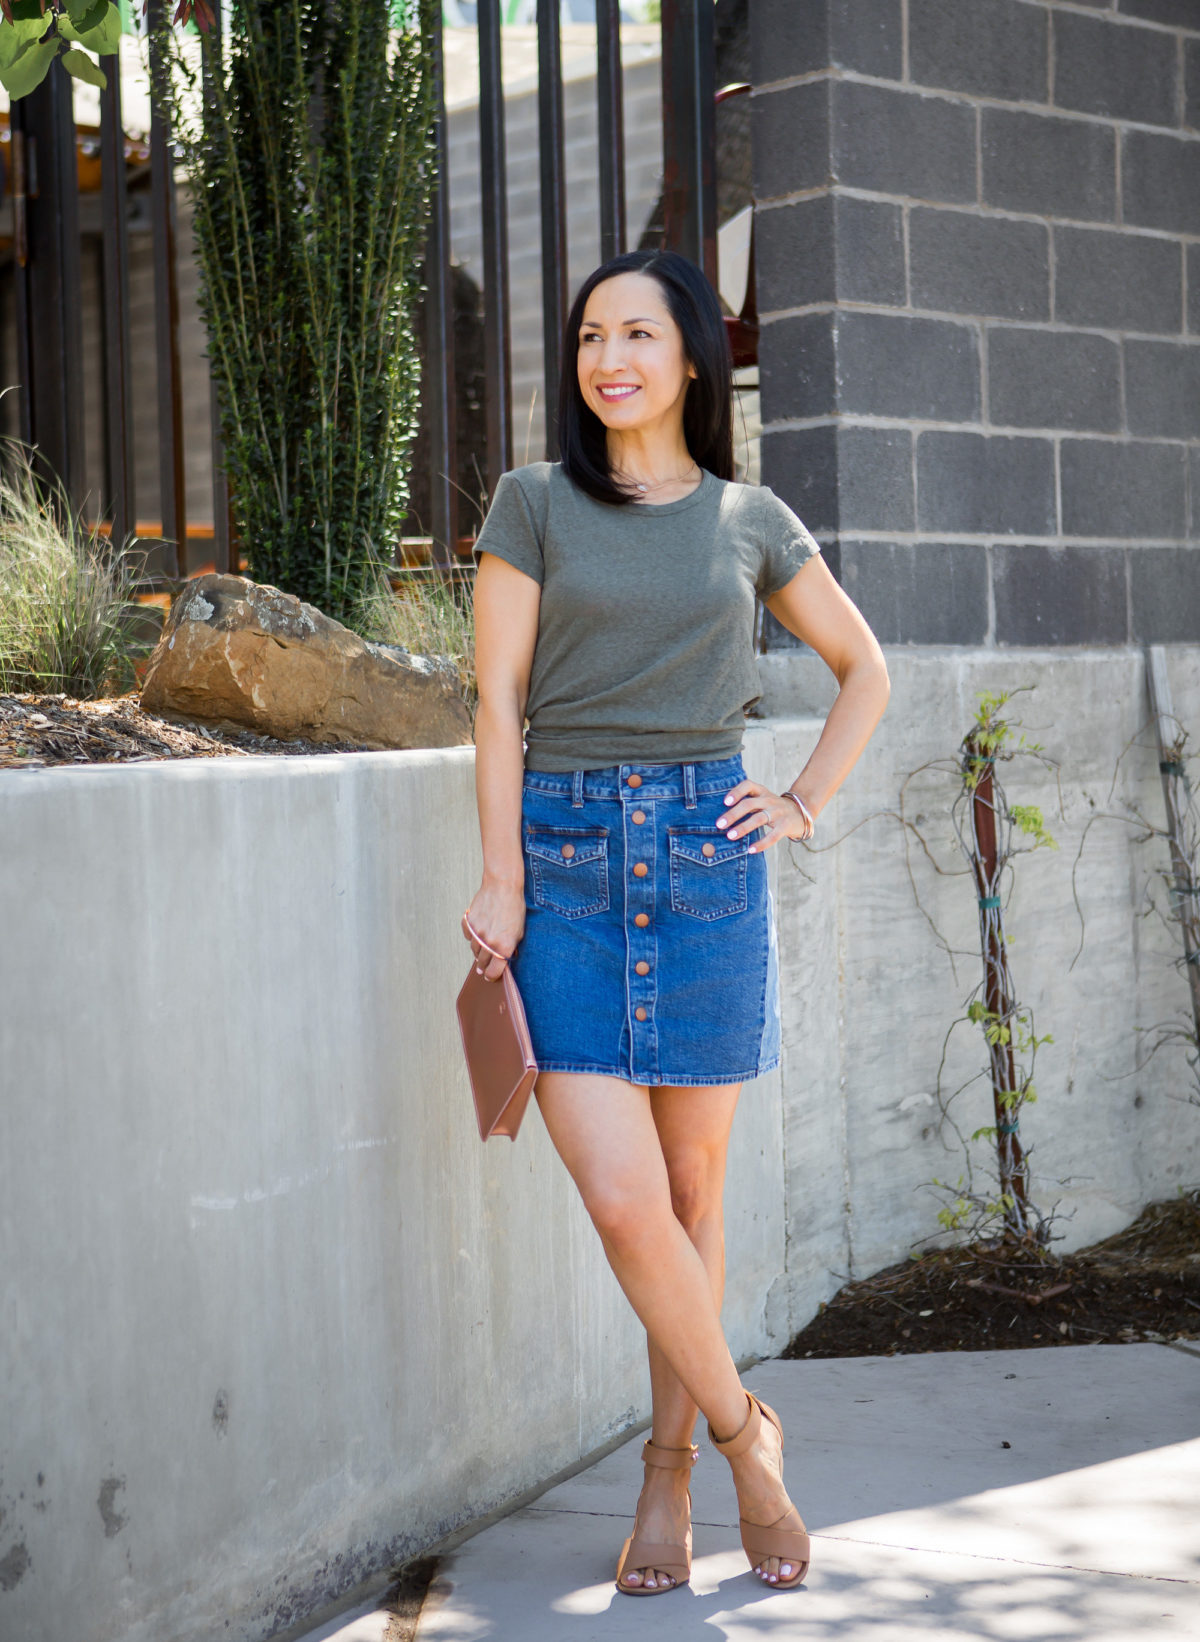 Madewell Denim Skirt and tie back tee, casual summer outfit